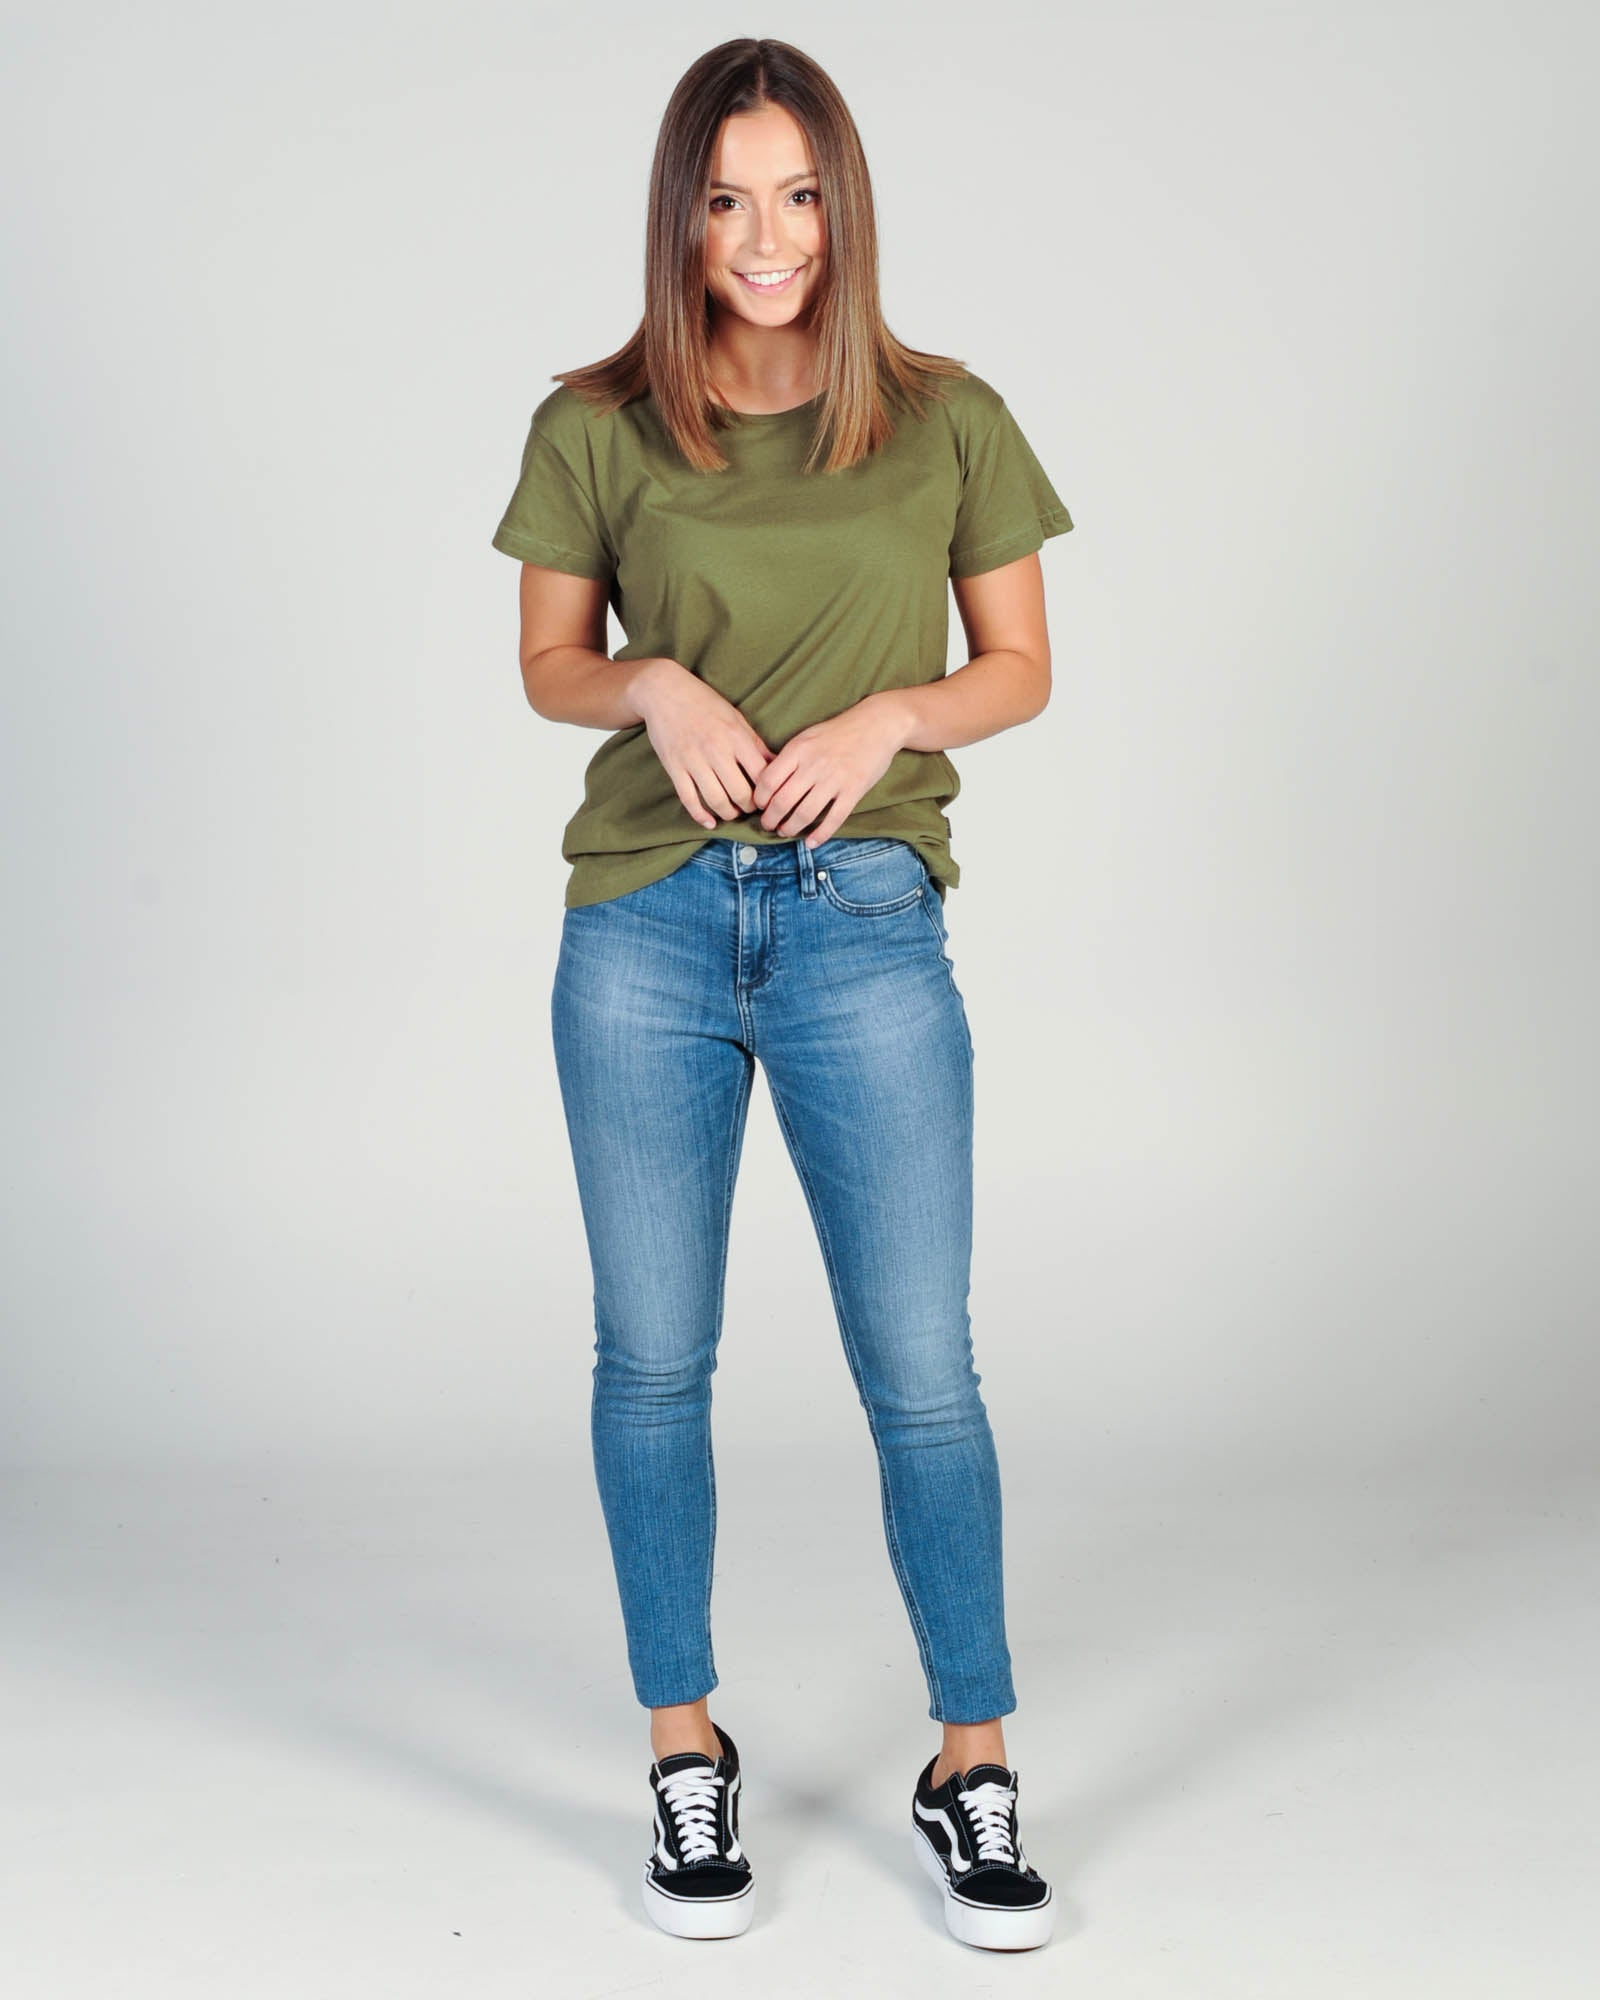 Silent Theory Polly Tee - Khaki Green